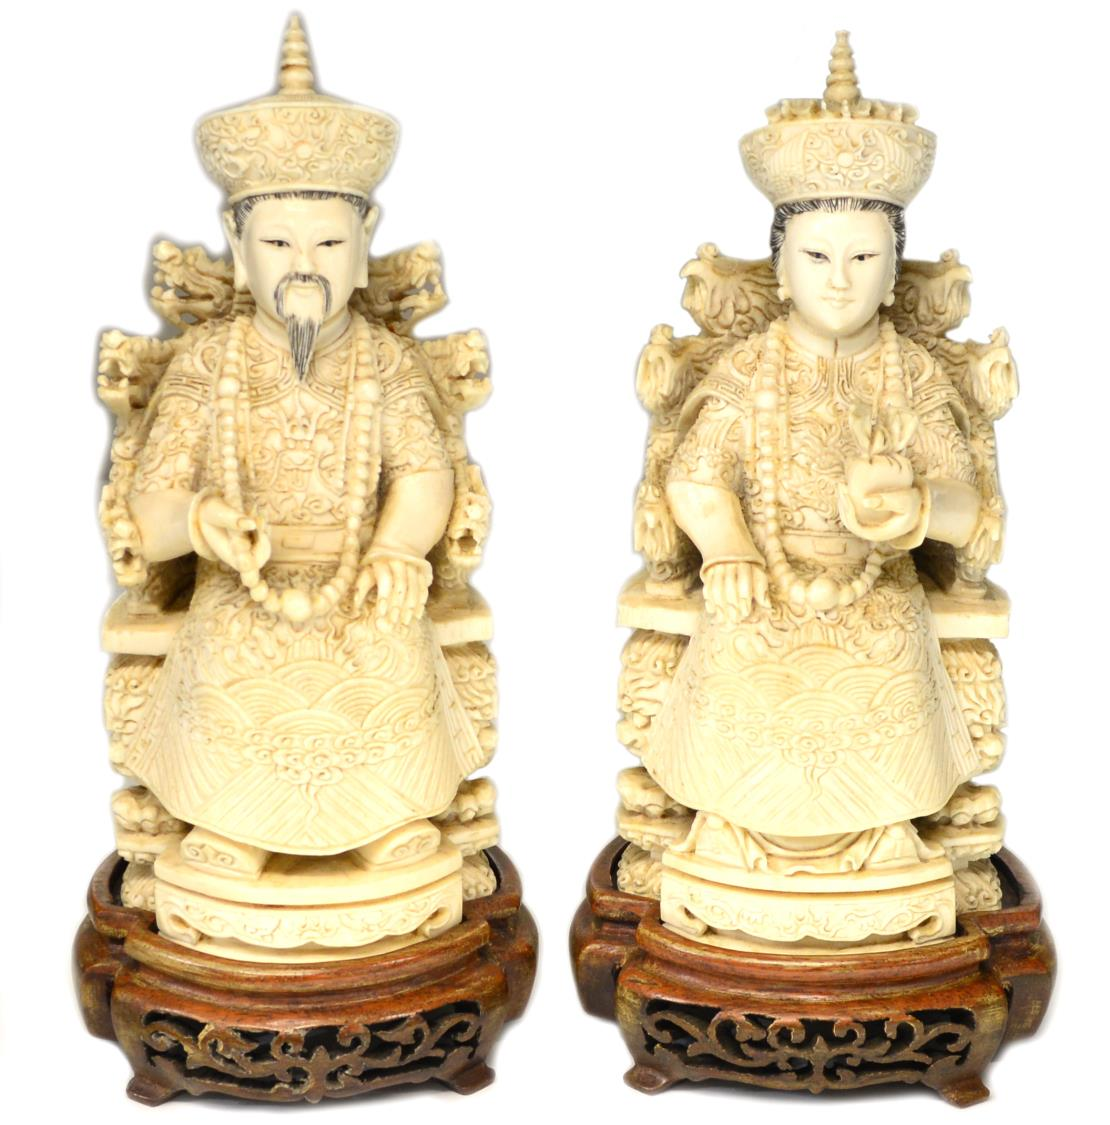 2 Chinese Carved Ivory Emperor Amp Empress Figures March